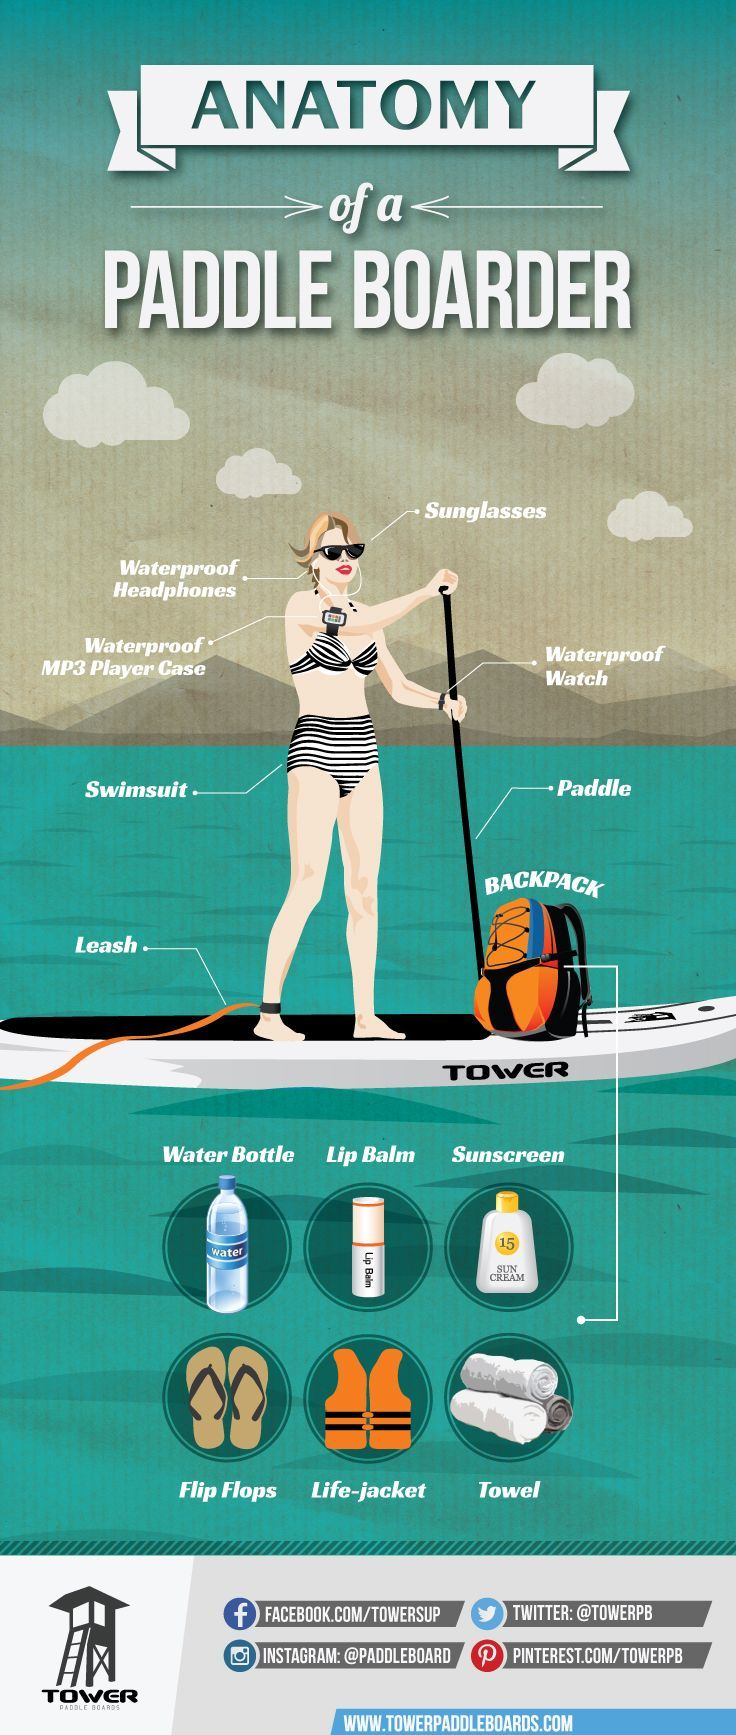 What do you bring when you go paddle boarding? Here's all of the things to bring on your SUP outings so your 100% prepared! #paddleboarding #SUP #paddleboard: